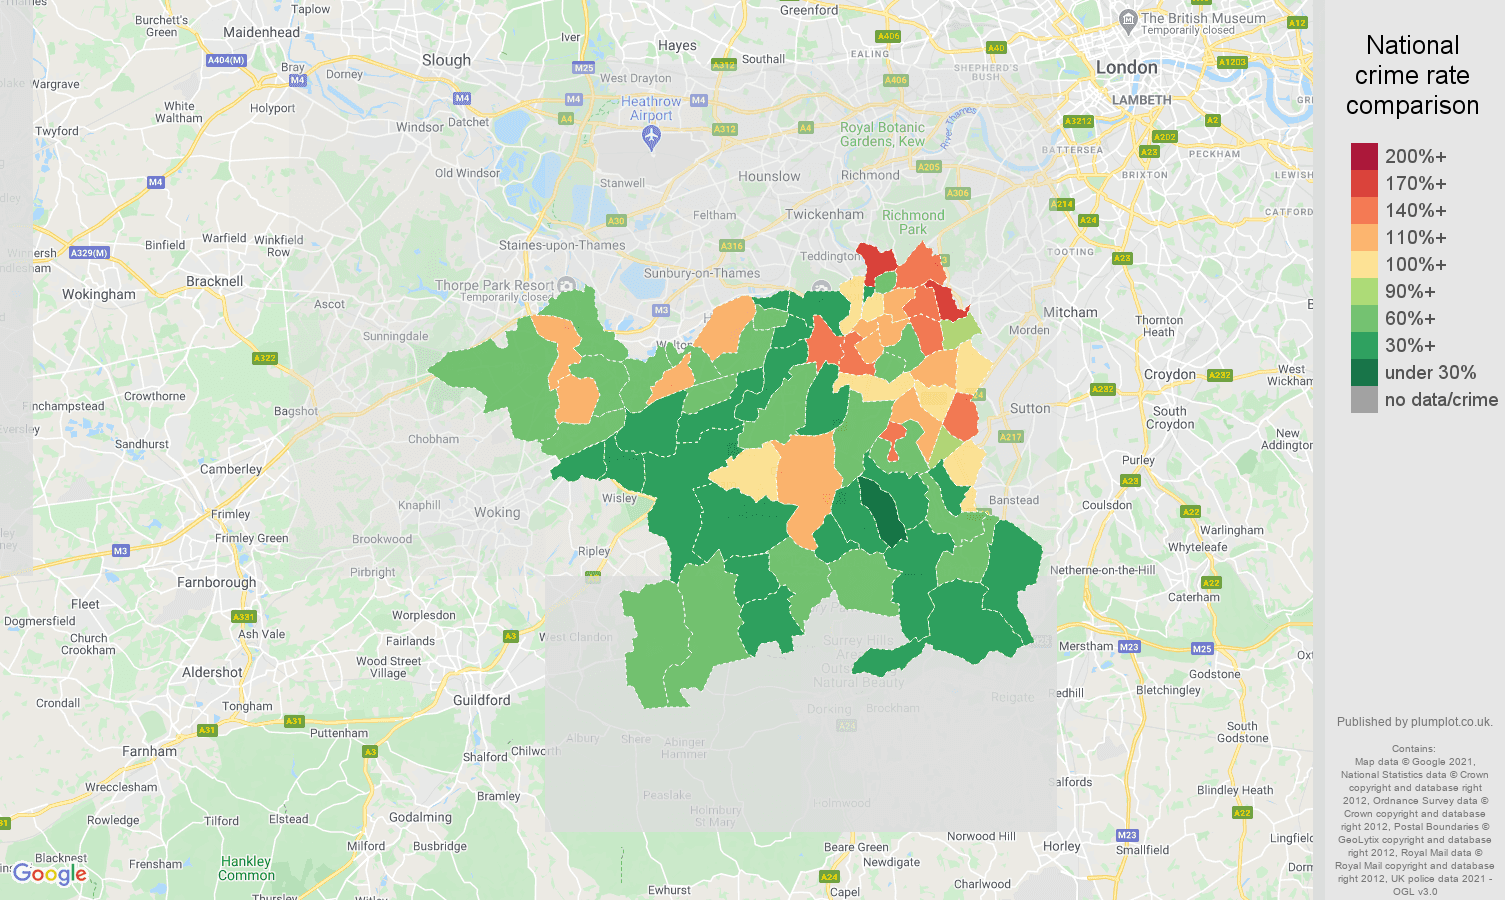 Kingston upon Thames burglary crime rate comparison map